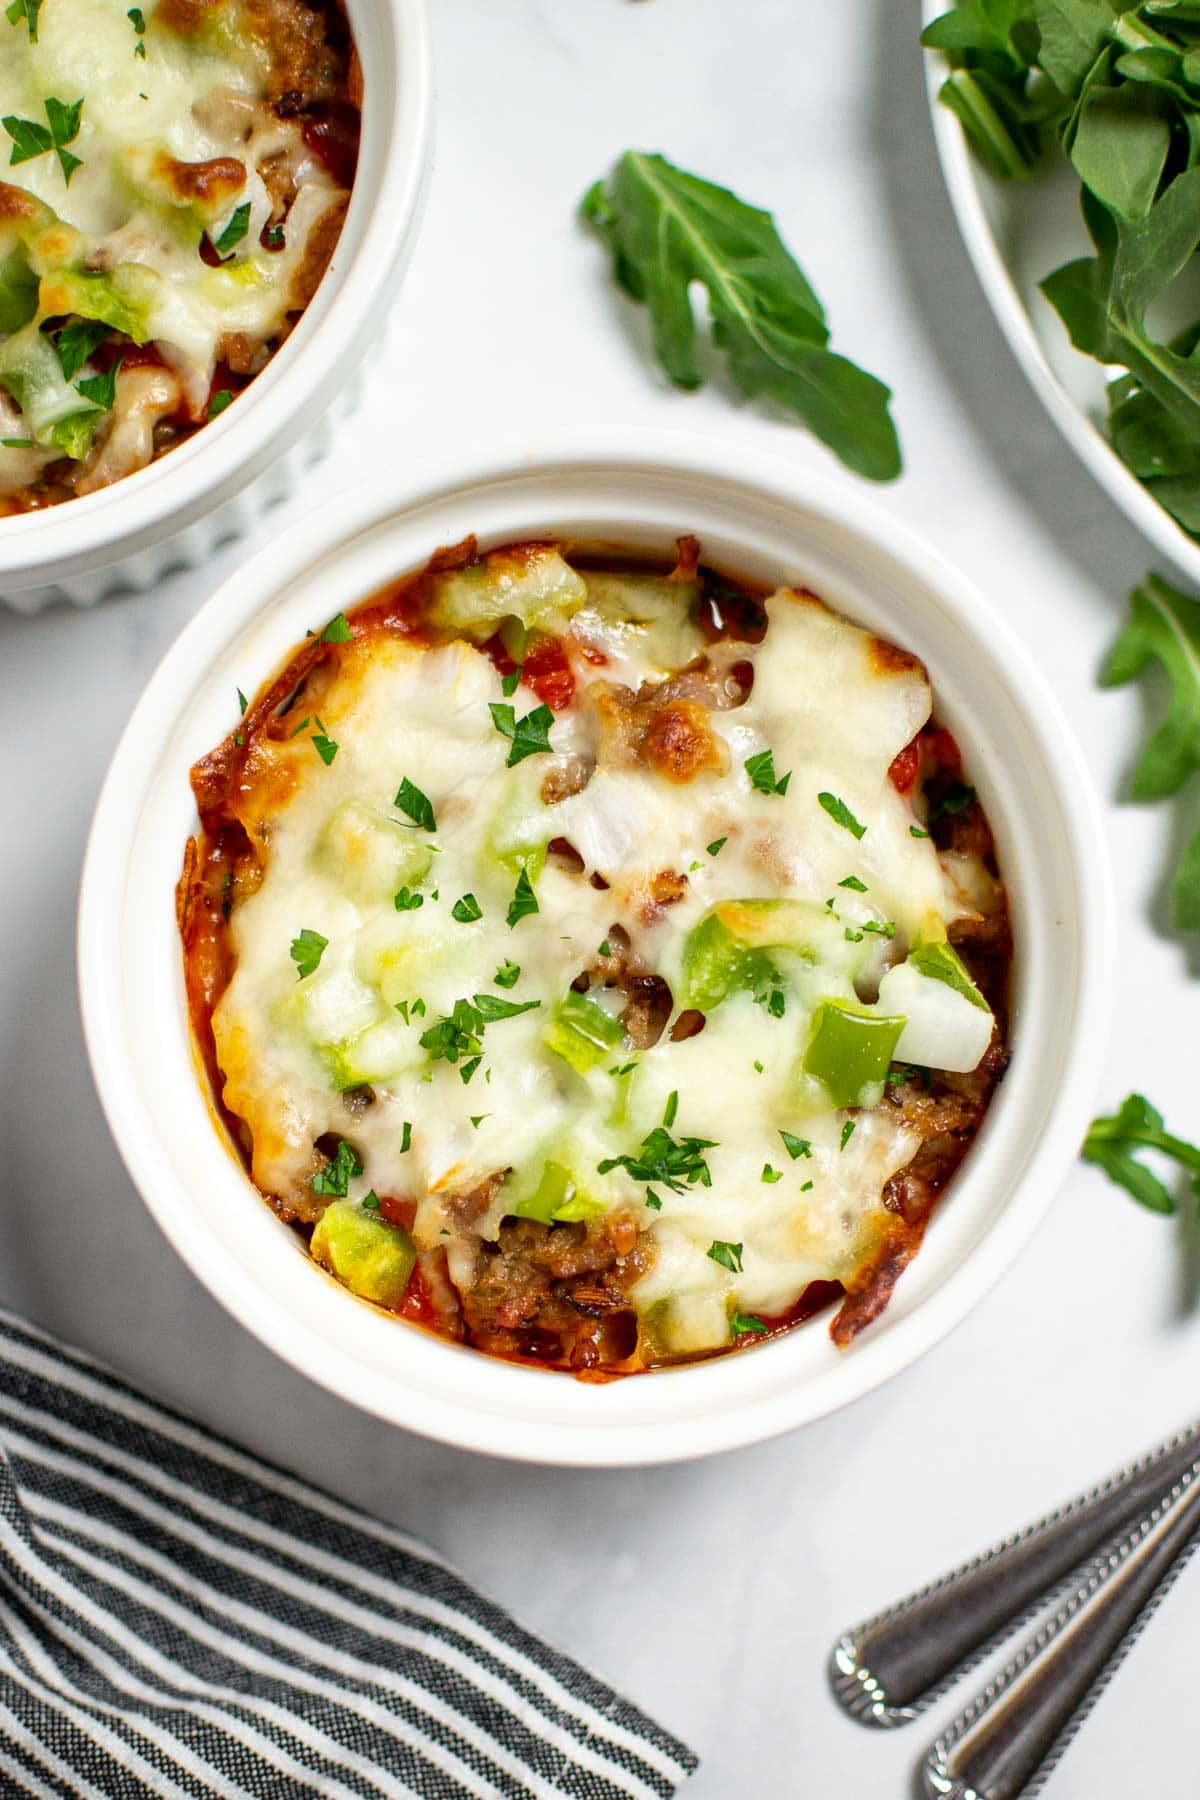 Pizza Bowl with cheese, green pepper, sausage and onions in a white ramekin